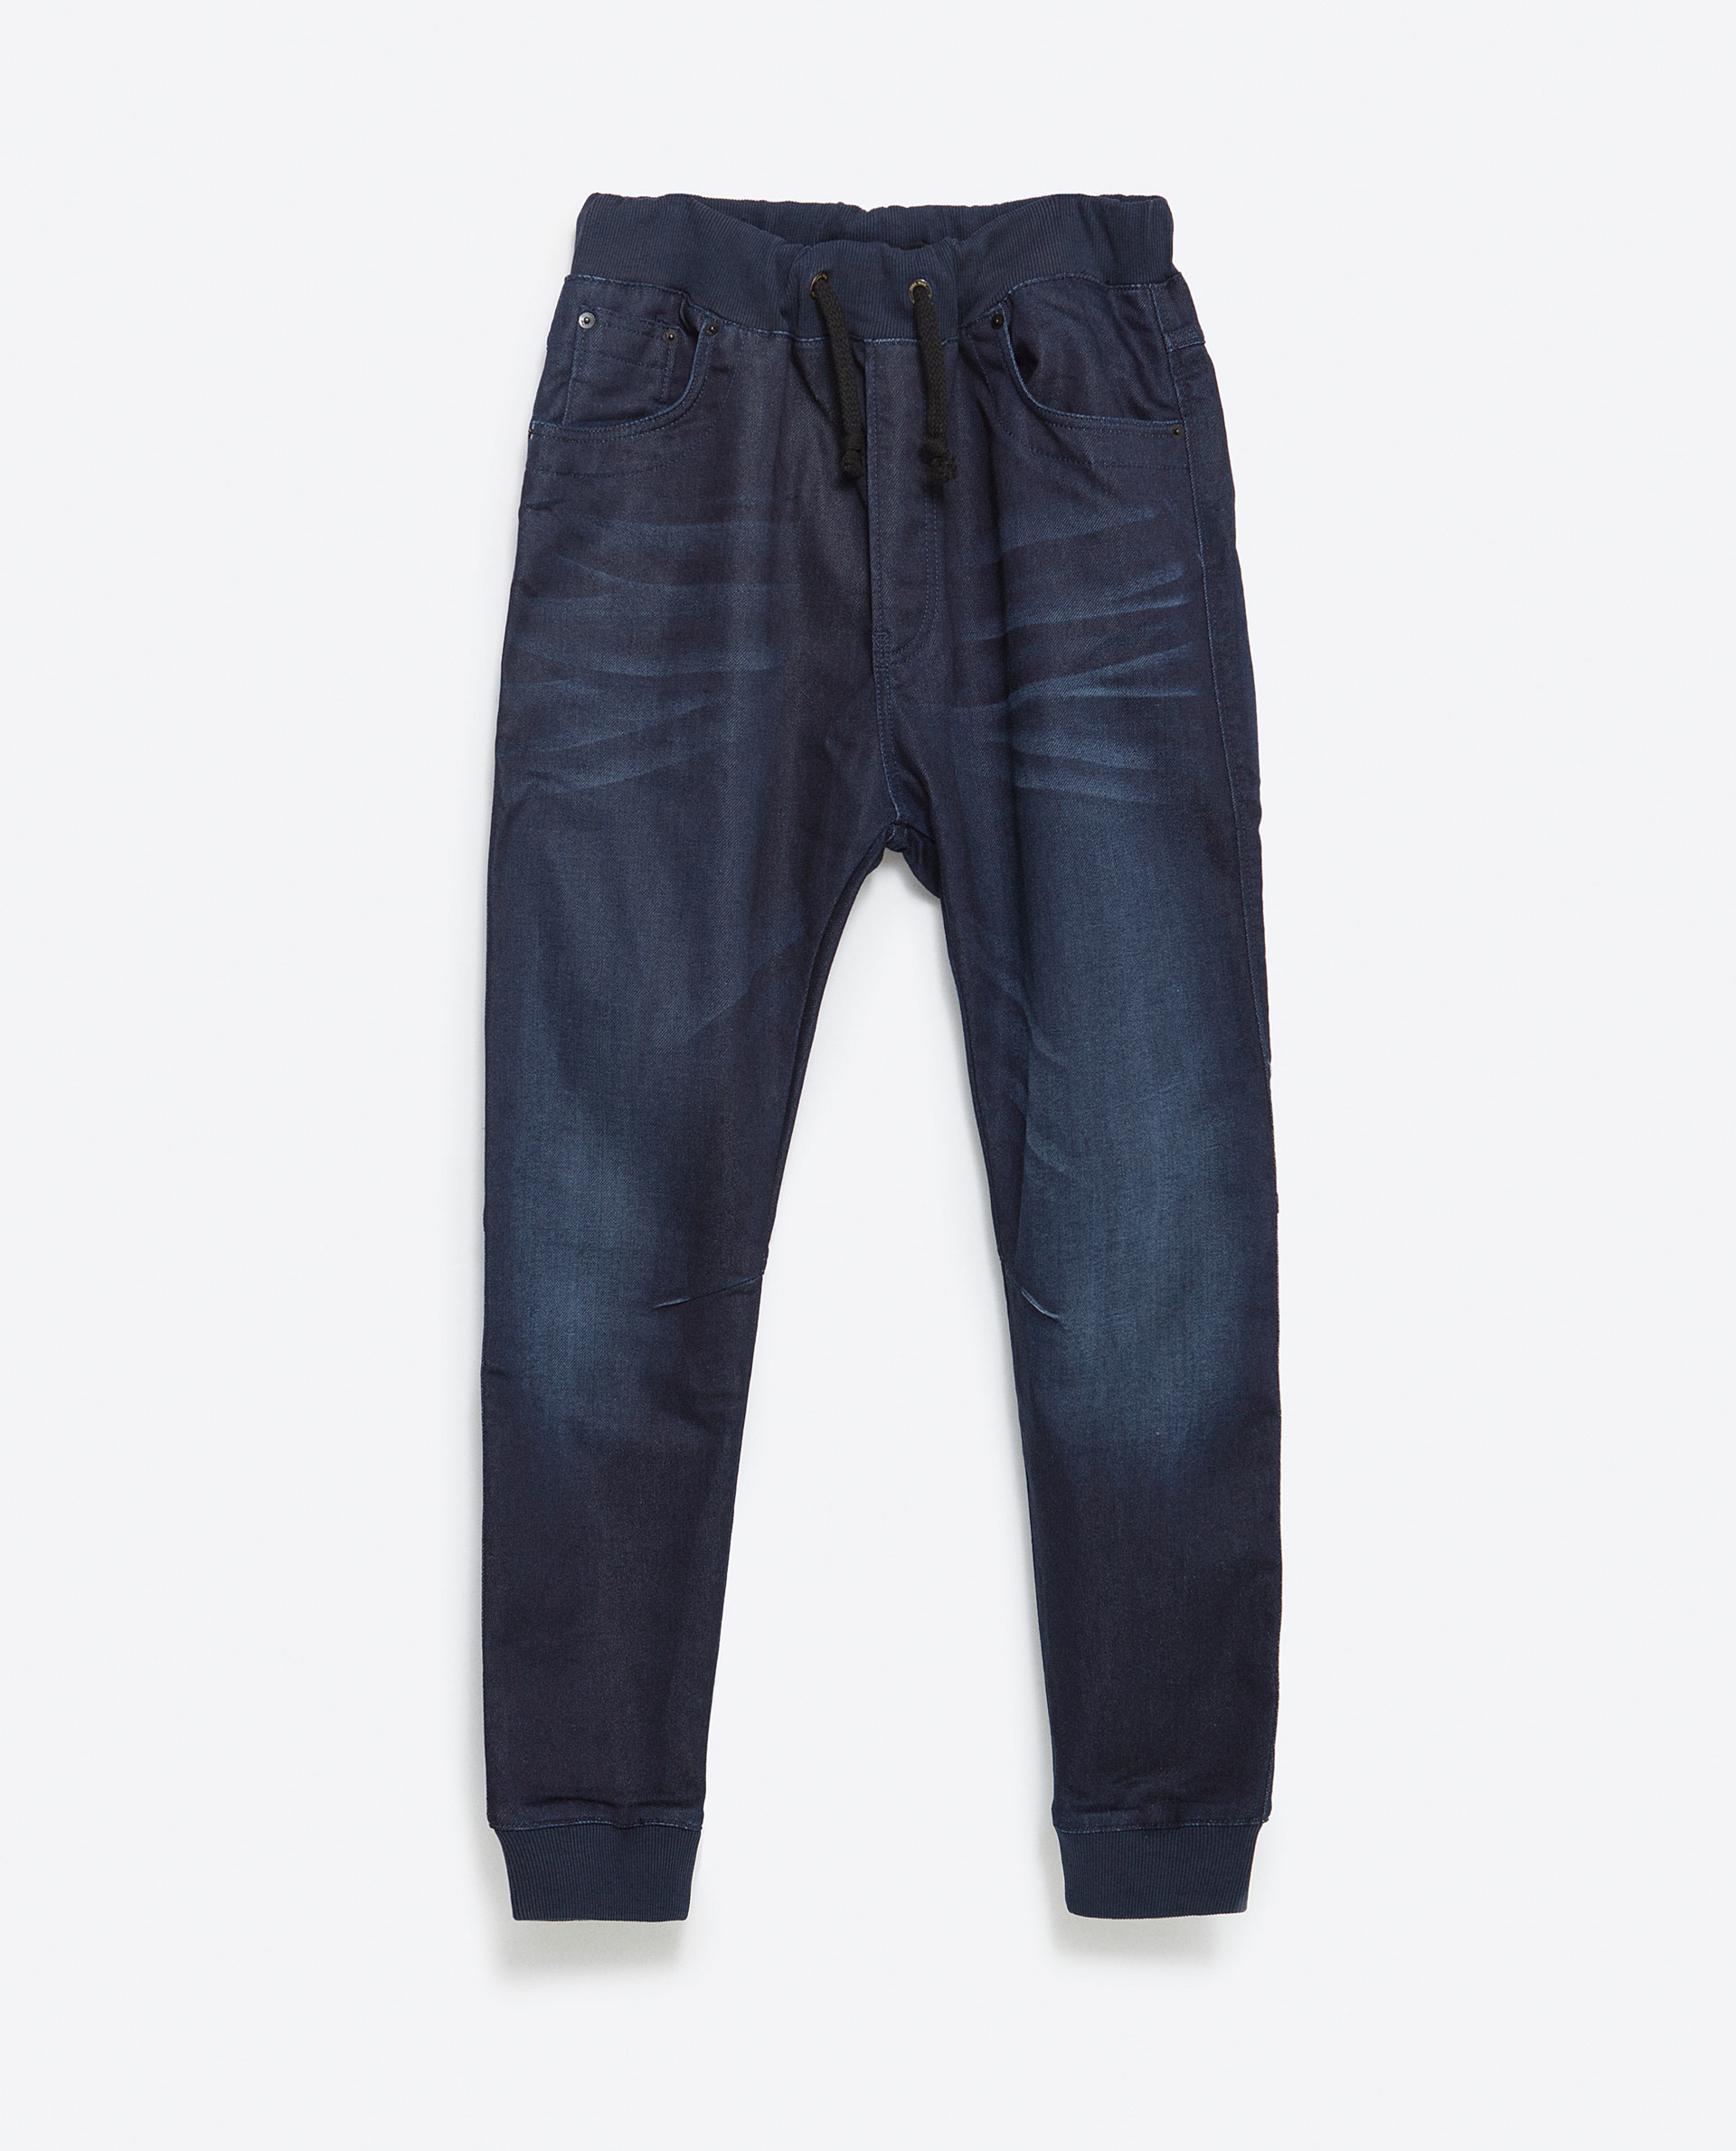 baggy jeans for men